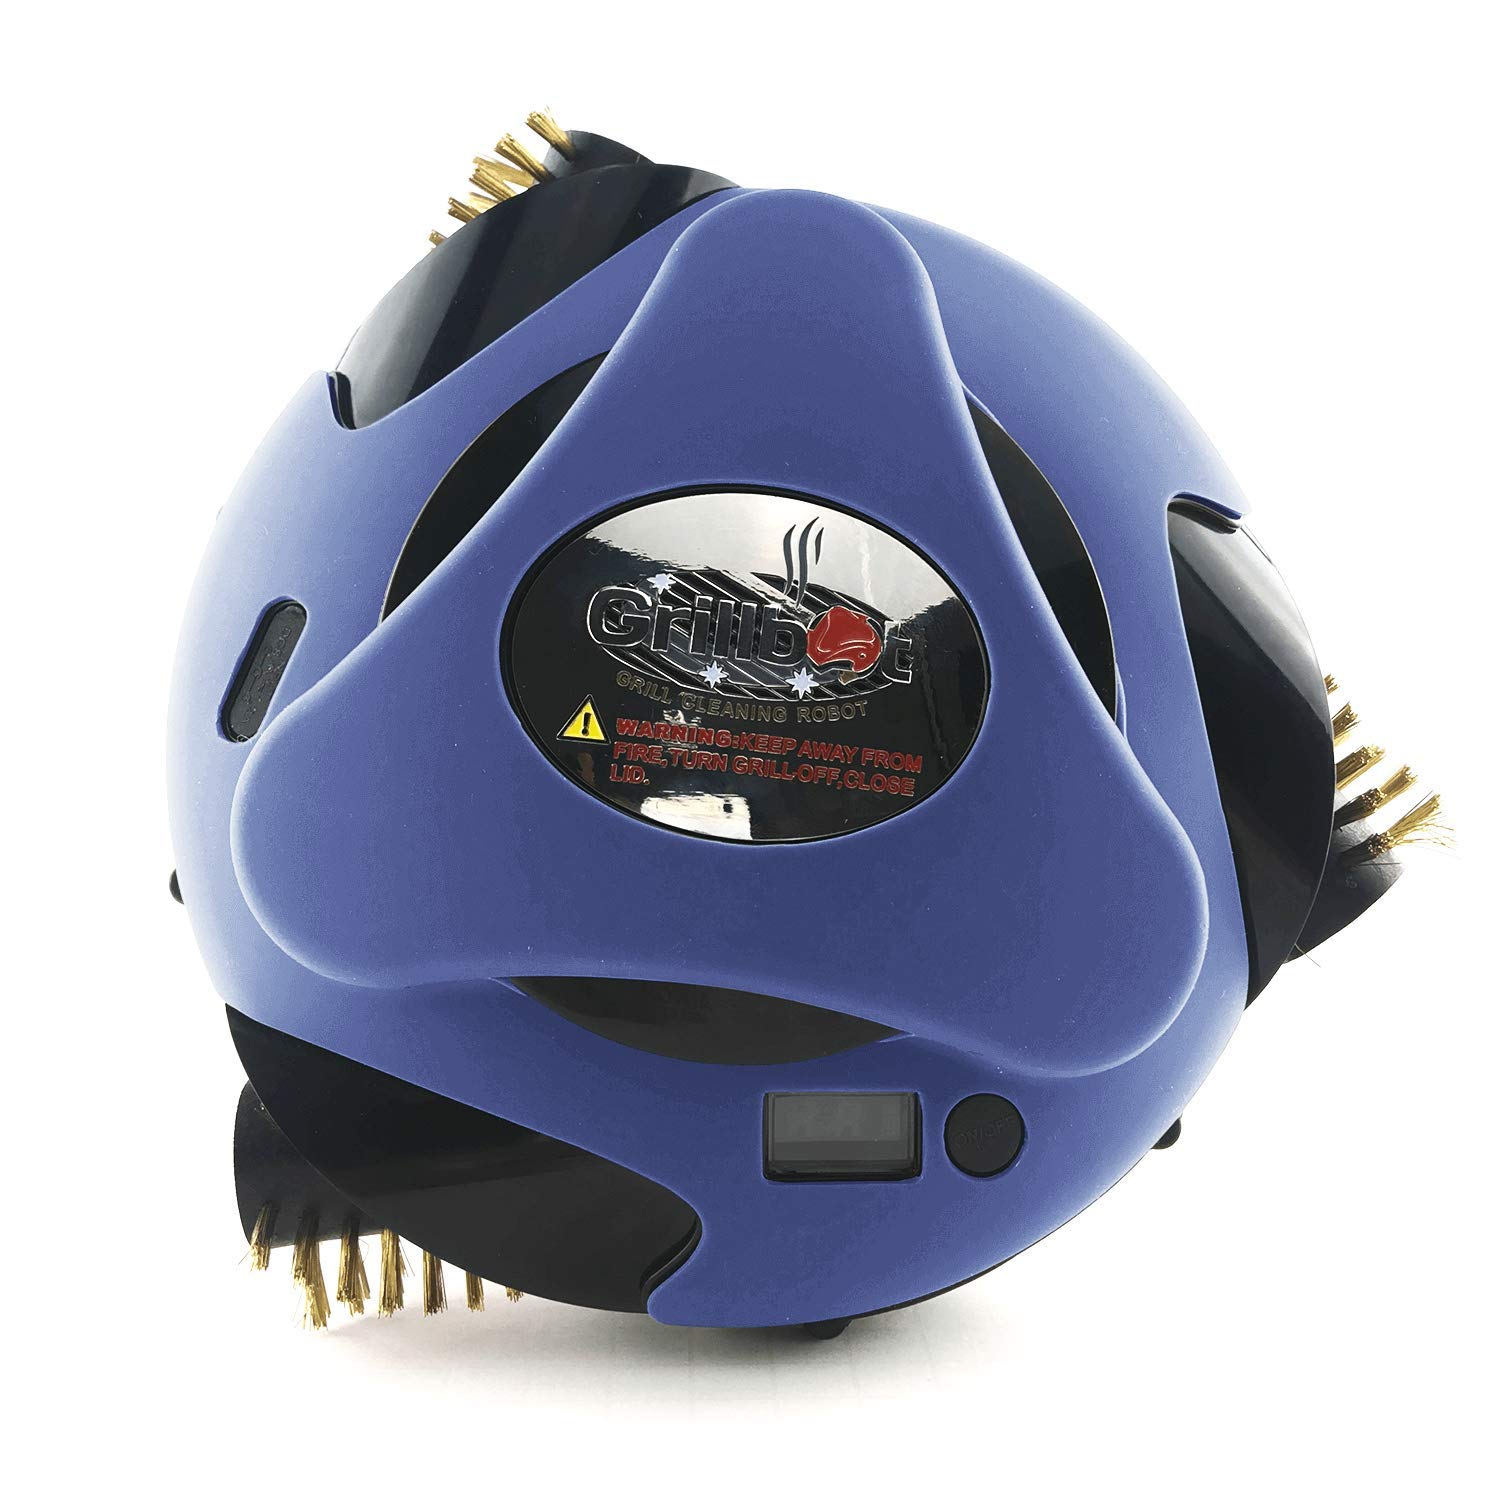 Provides Extra Protection Grillbot Automatic Grill Cleaning Robot Silicone Cover Blue Dishwasher Safe Weather /& Heat Resistant up to 250/°F BBQ Accessories Noise Reduction